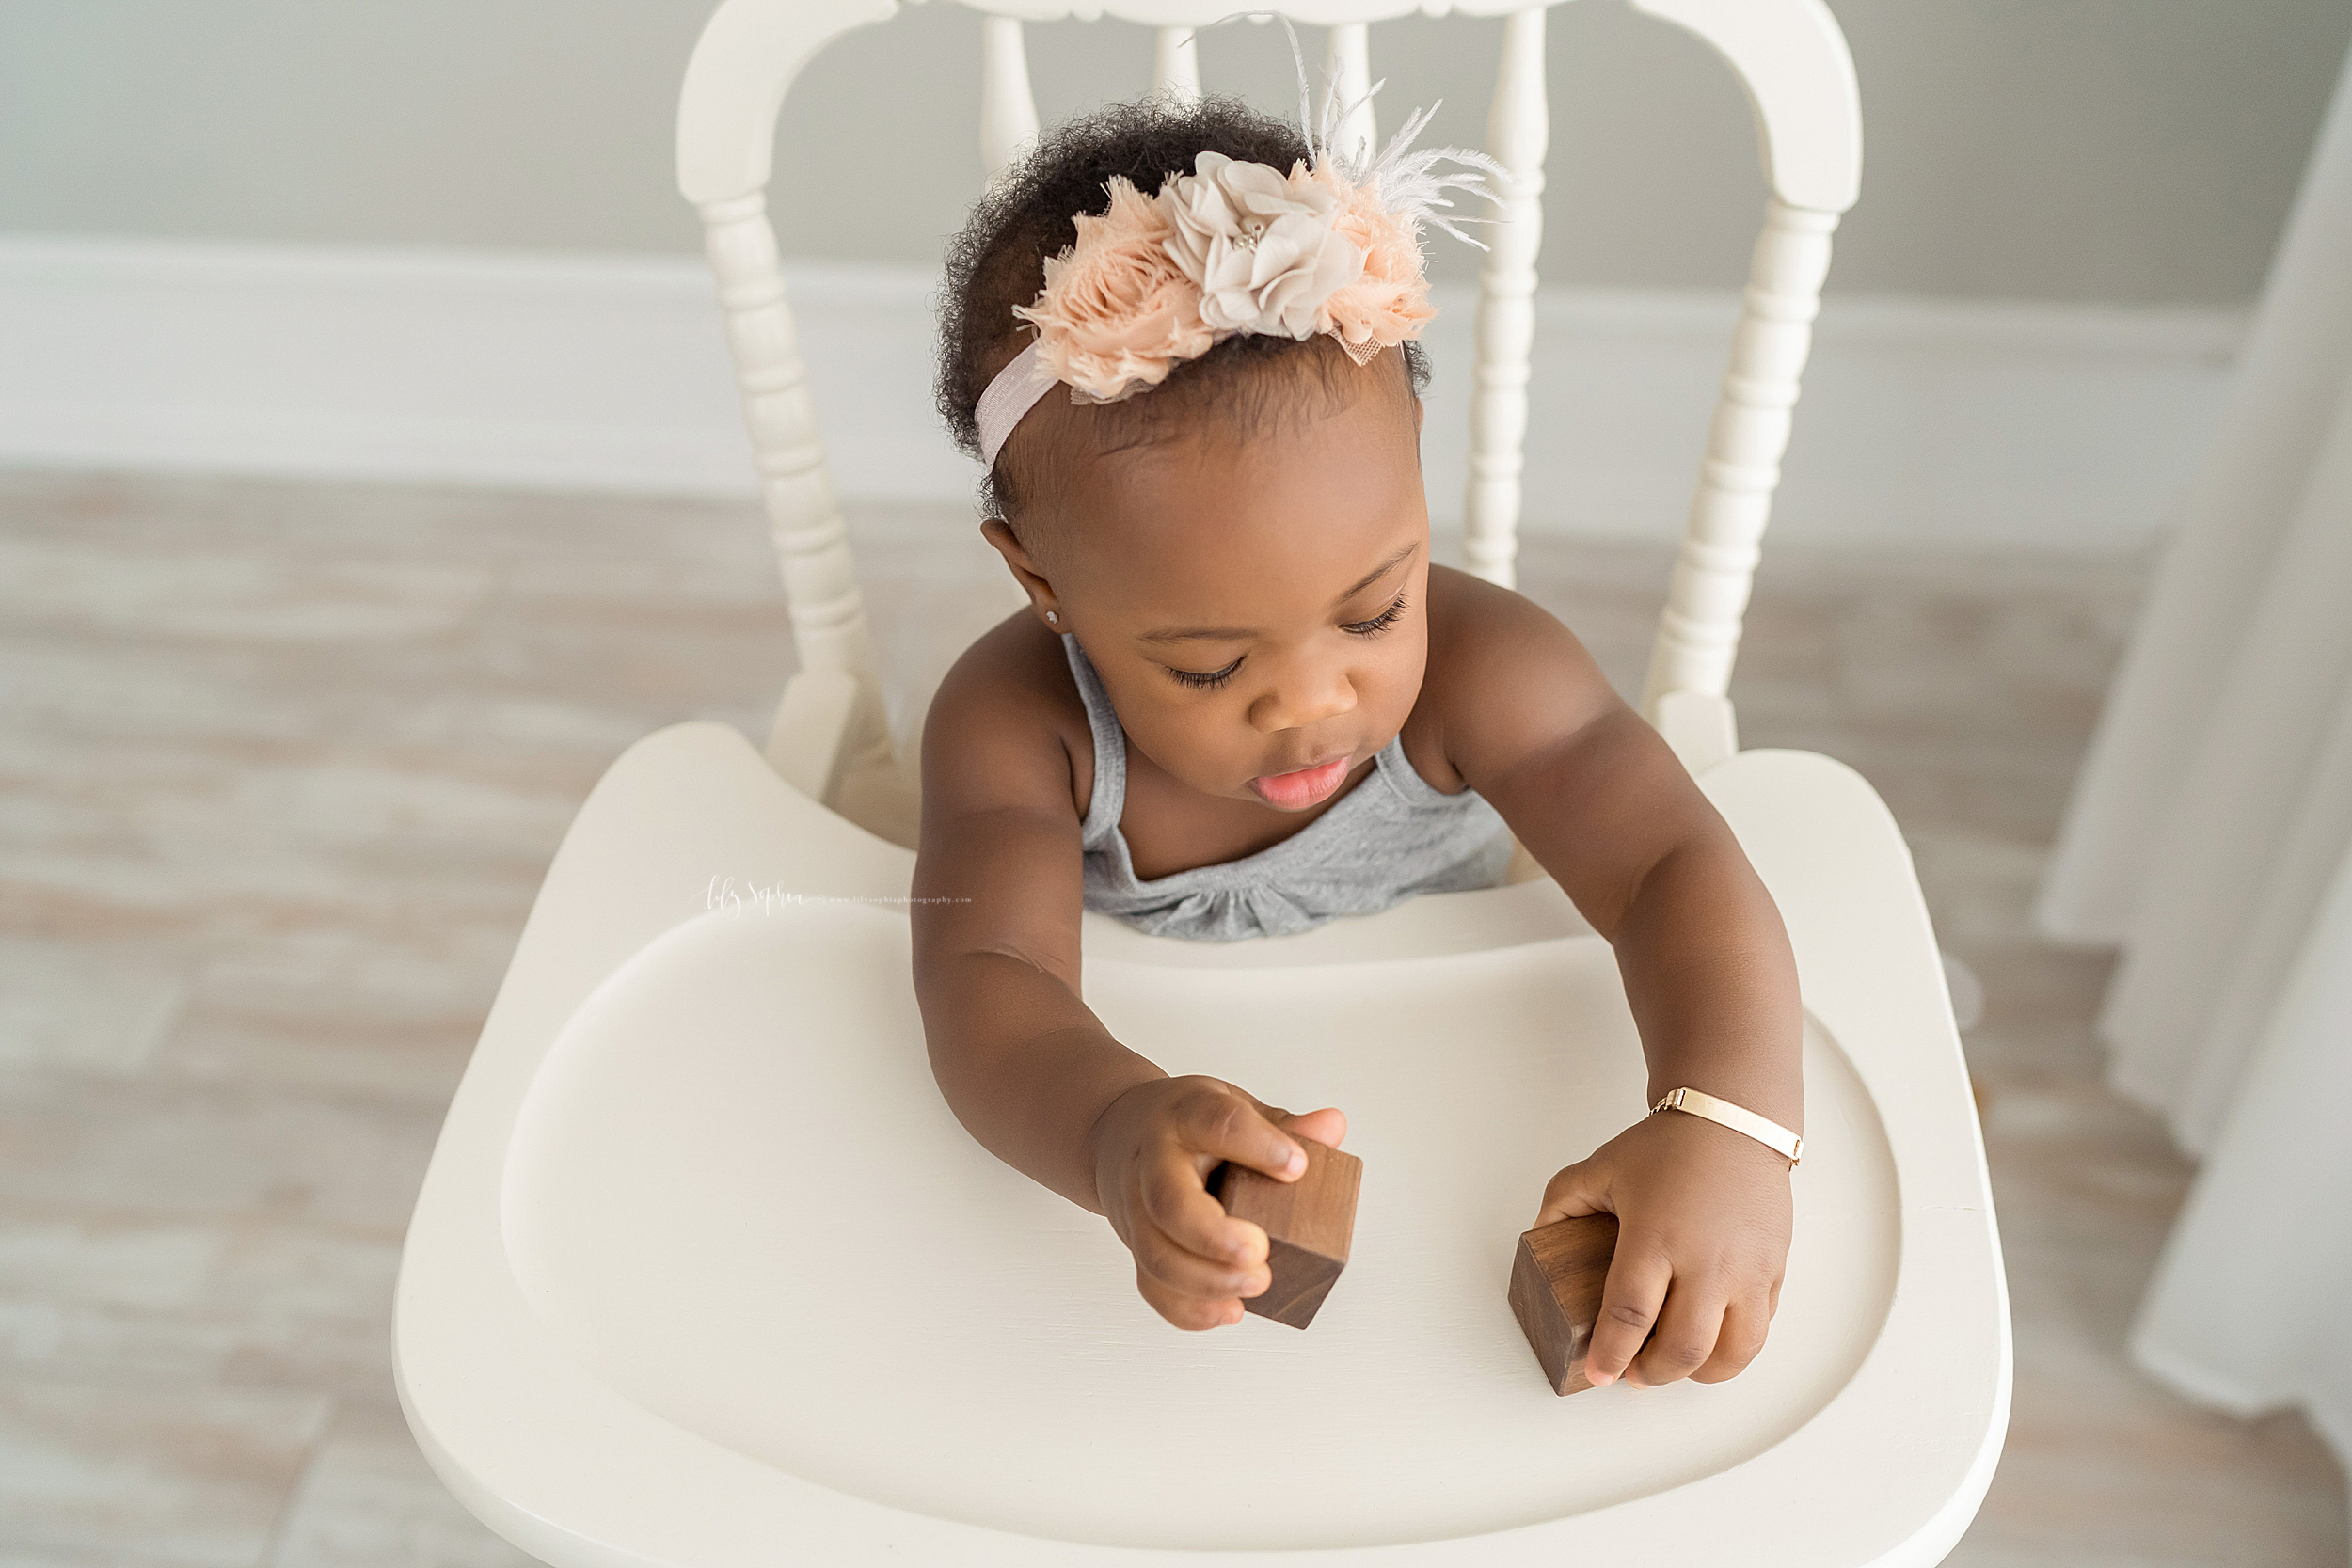 atlanta-decatur-candler-park-sandy-springs-buckhead-virginia-highlands-west-end-decatur-lily-sophia-photography-studio-one-year-old-baby-girl-first-birthday-cake-smash-toddler-big-brother-family-parents-session_1878.jpg